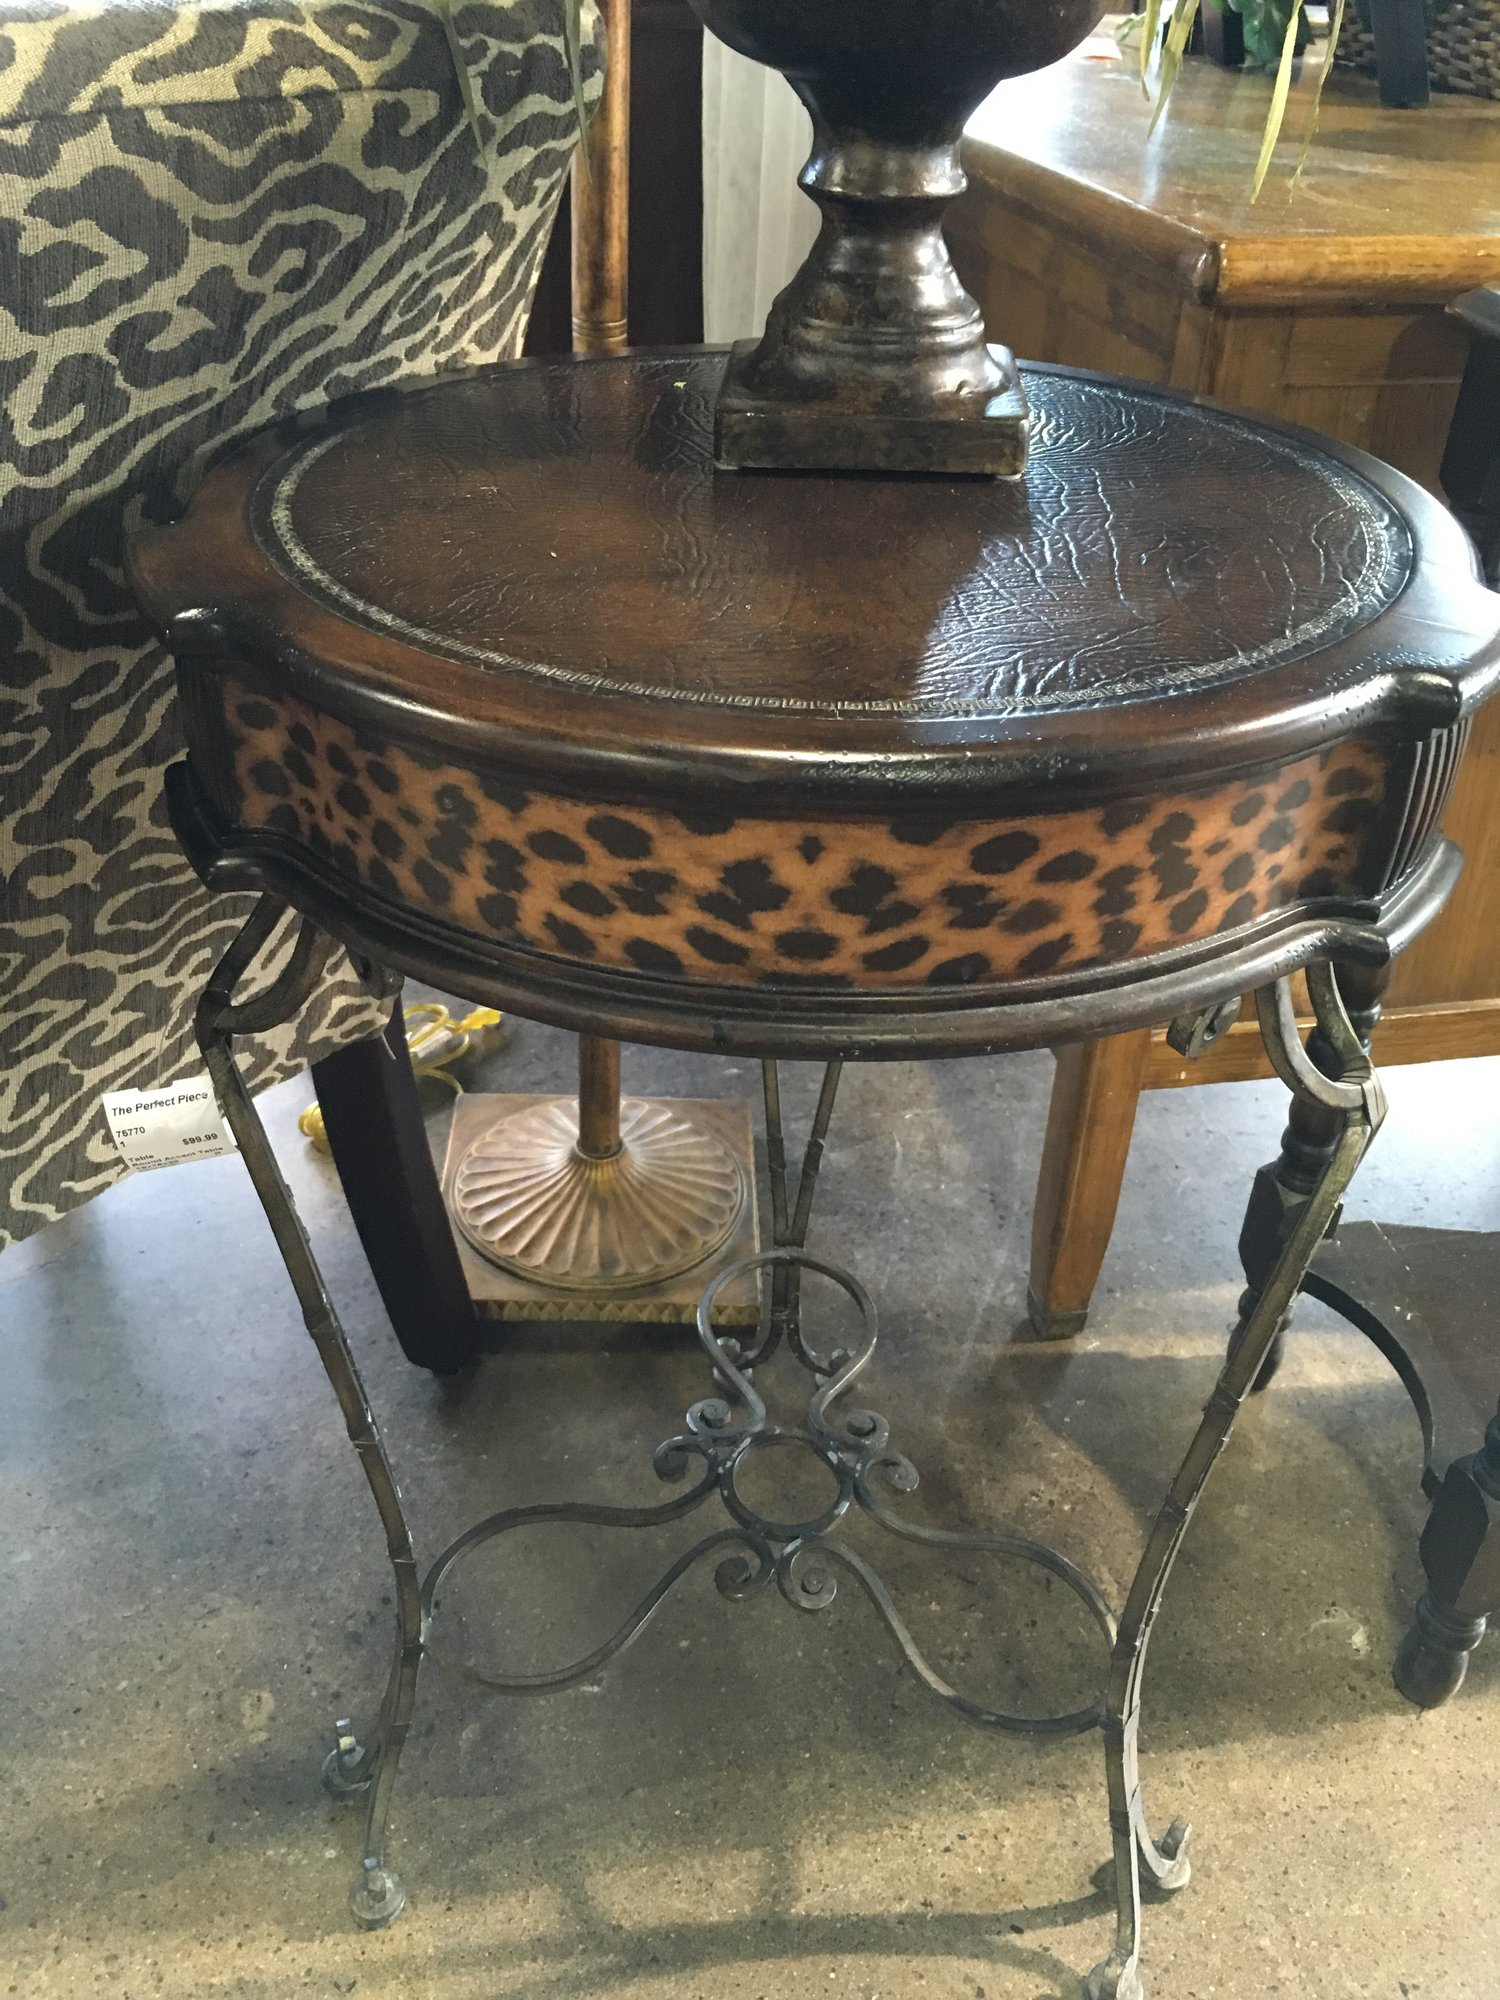 round accent table the perfect piece home furnishings antique you need that will spark conversation make someone smile large garden umbrellas wine cupboard decorative tablecloths